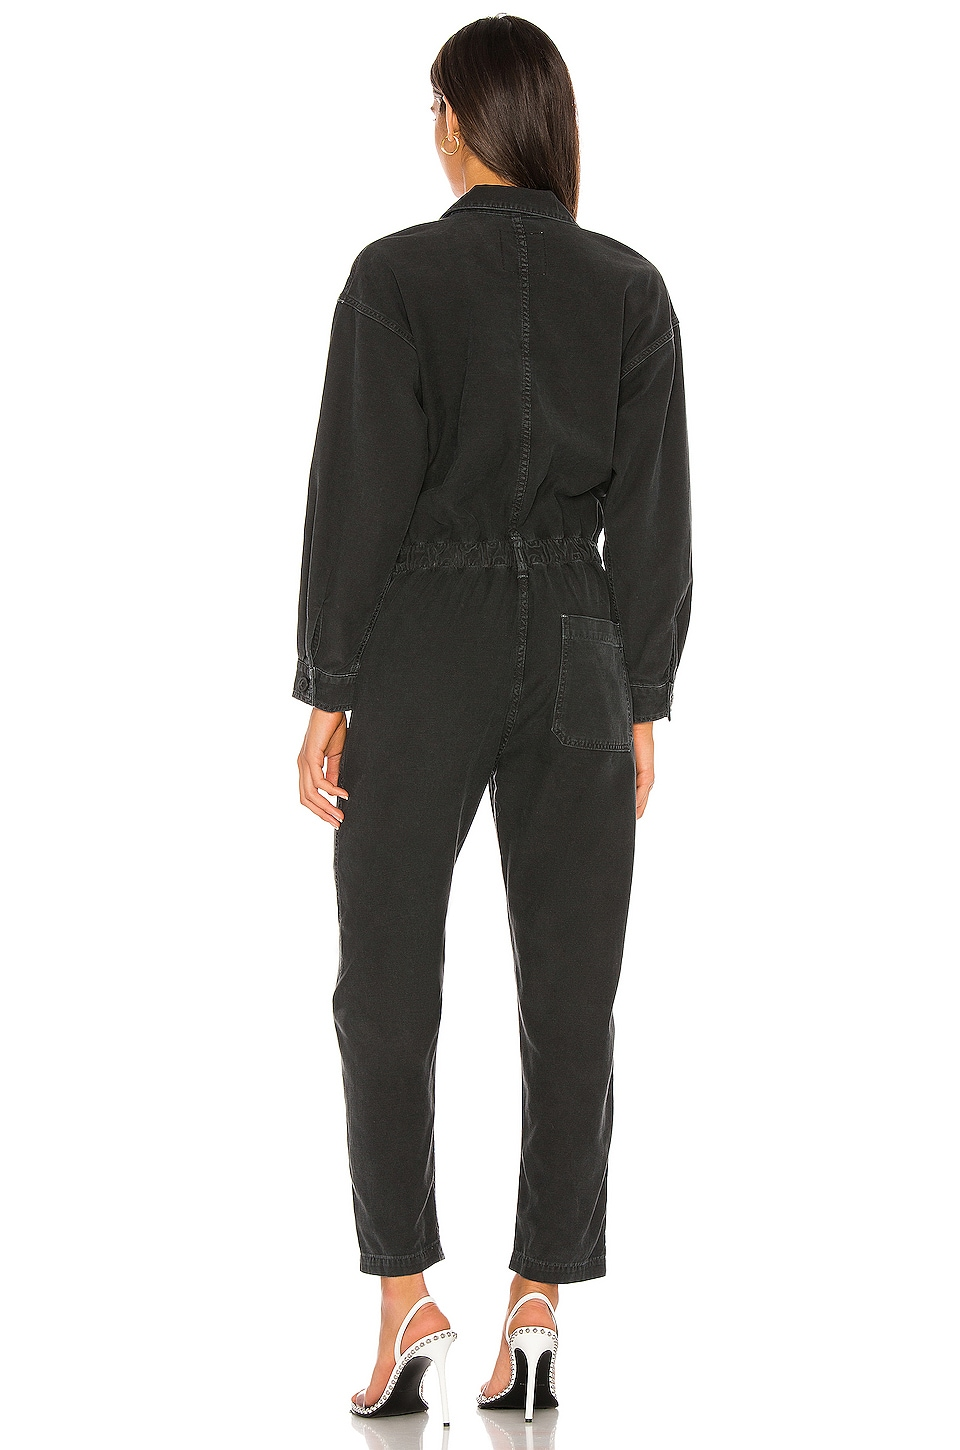 Marta Jumpsuit, view 3, click to view large image.